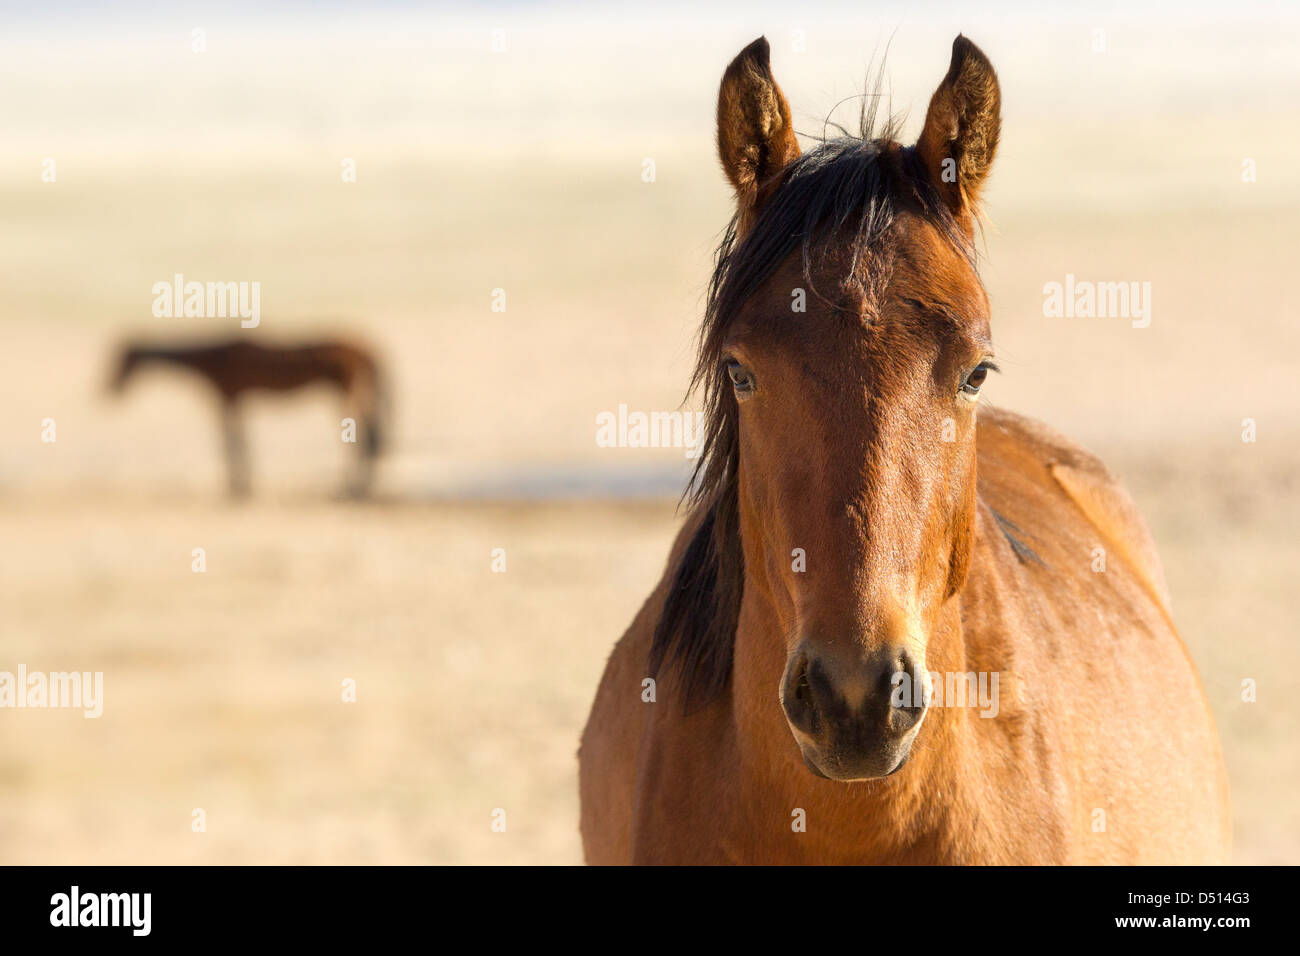 Headshot and distant silhouette of feral wild horses (Equus ferus Caballus) in Namib desert, southern Namibia. - Stock Image